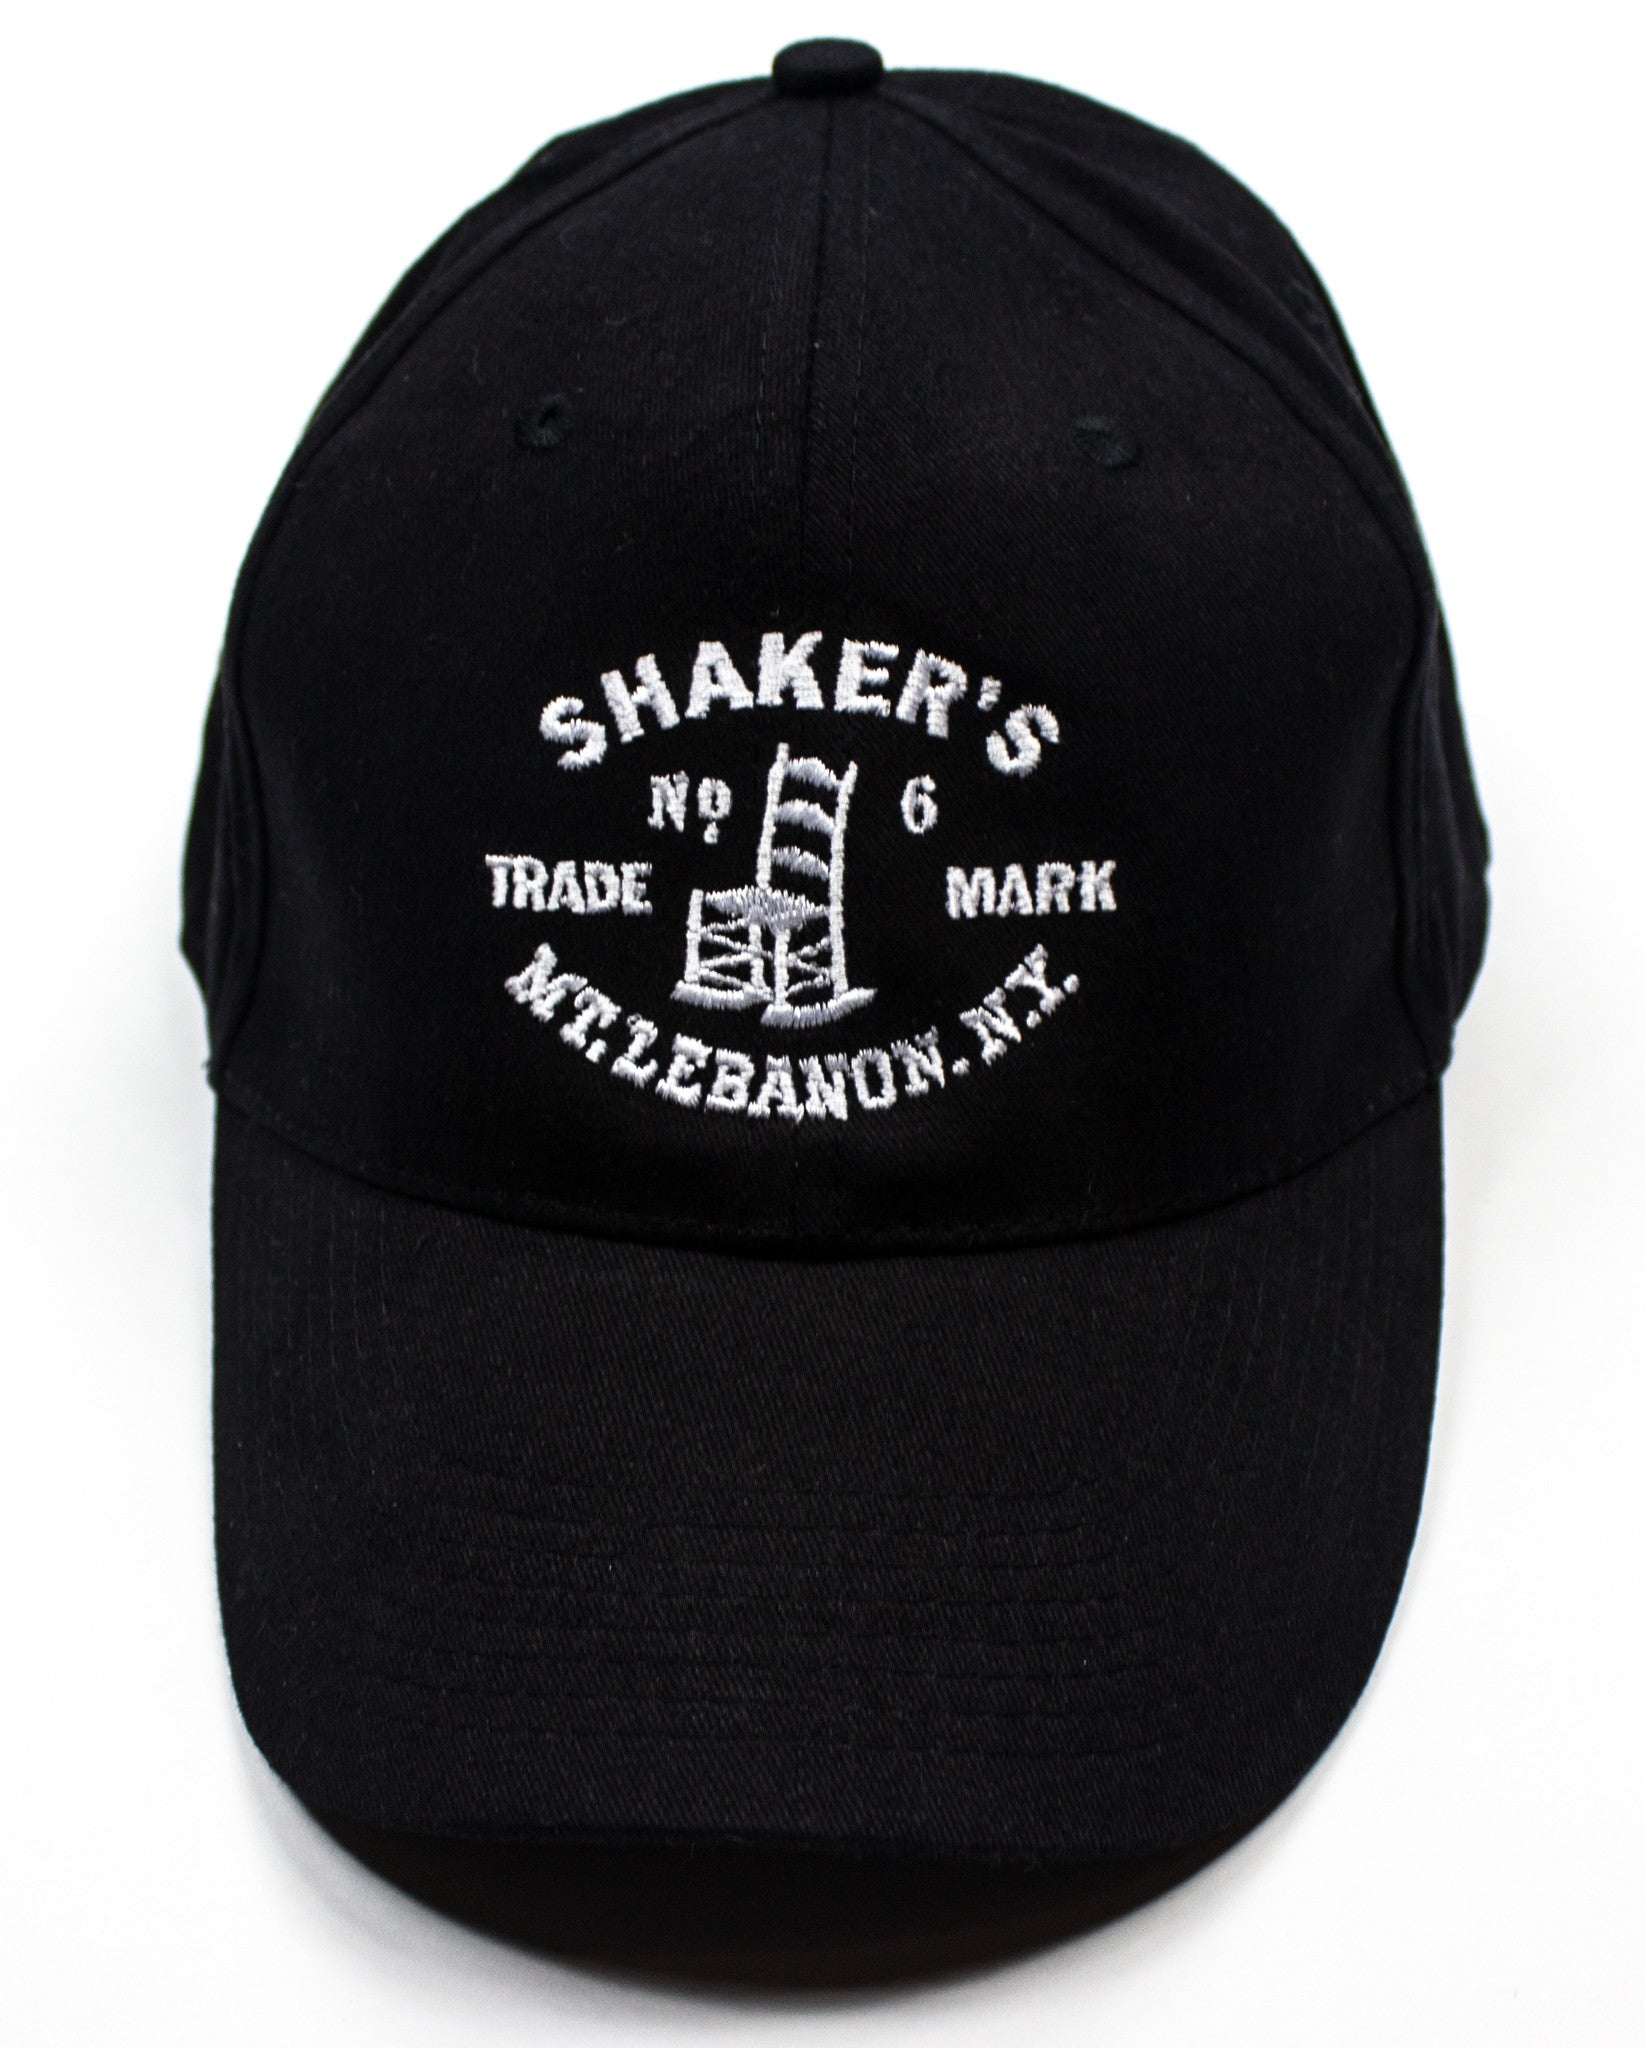 Mount Lebanon Shaker Chair Trademark Baseball Cap